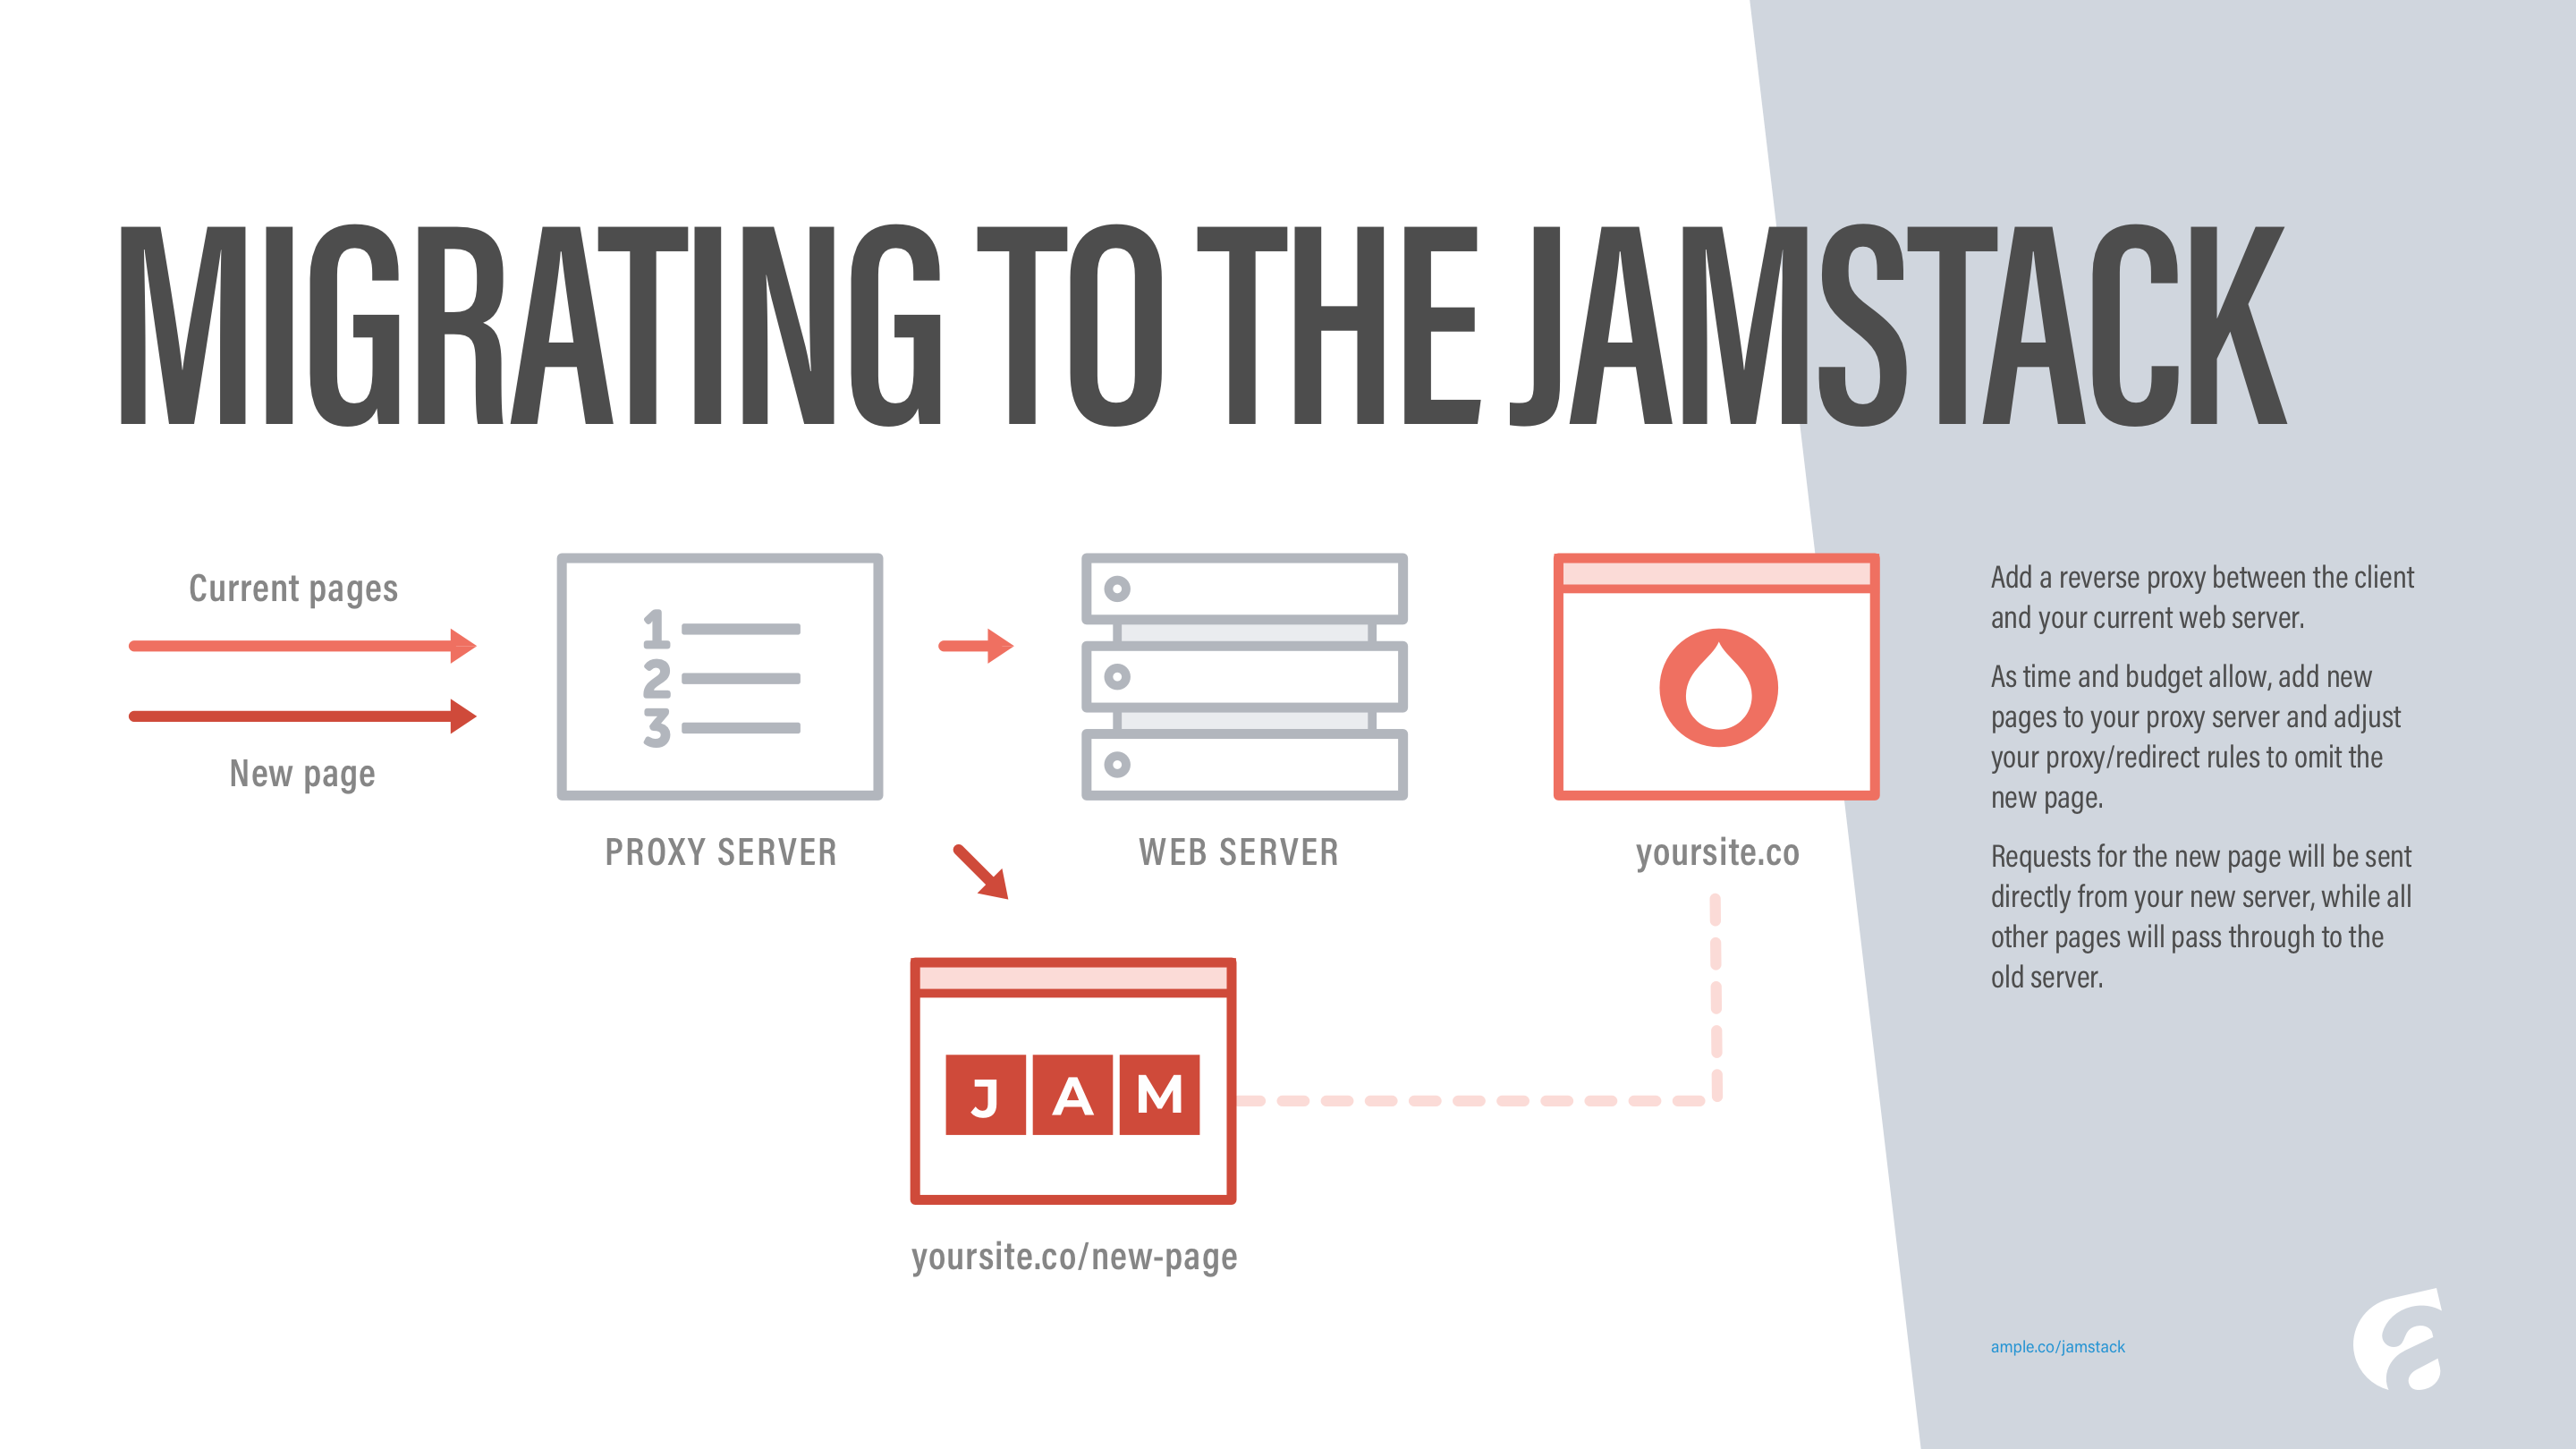 Migrating to the JAMstack (presentation slide)